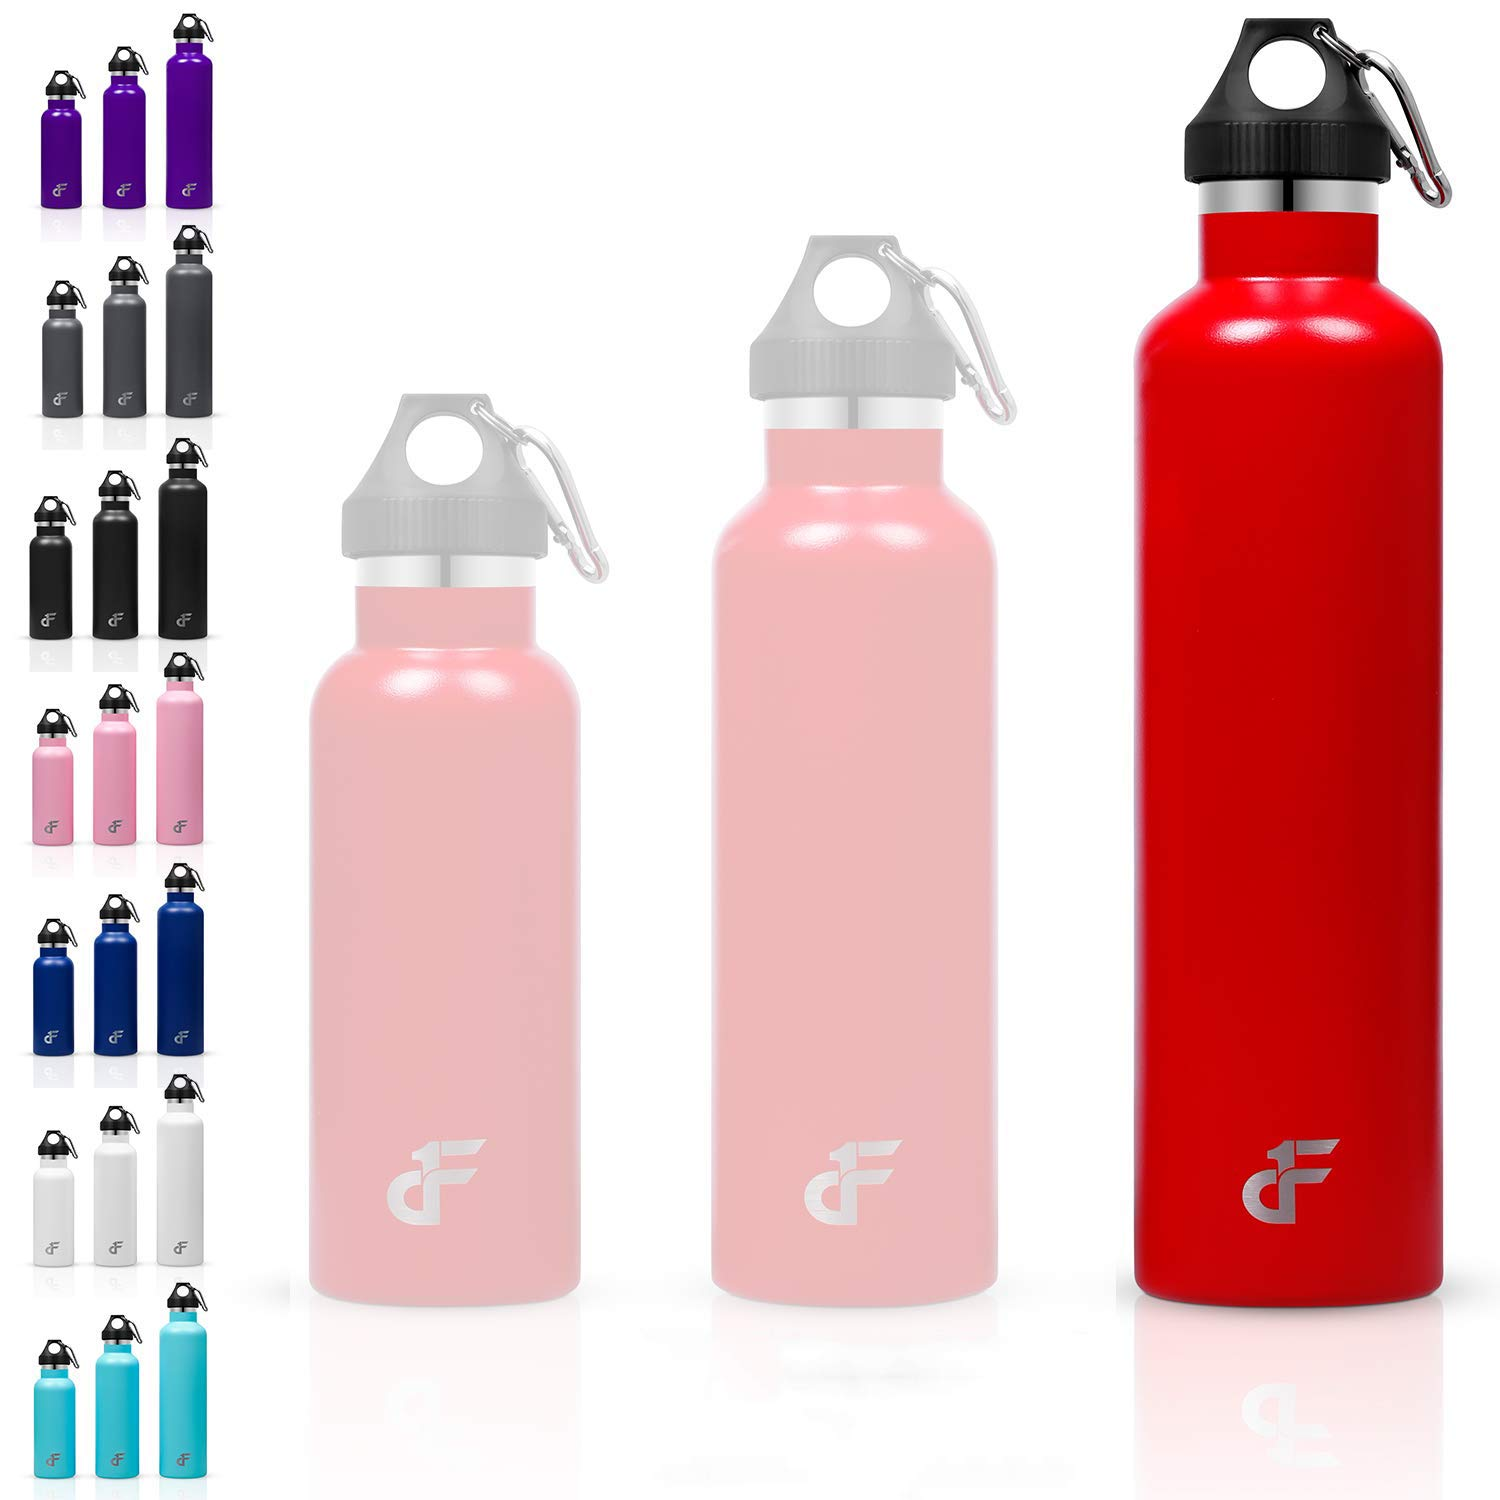 Day 1 Fitness Stainless Steel Water Bottle Standard Mouth, Carabiner Clip (16, 24, or 32oz) 3 Size, 8 Color, and Multi…